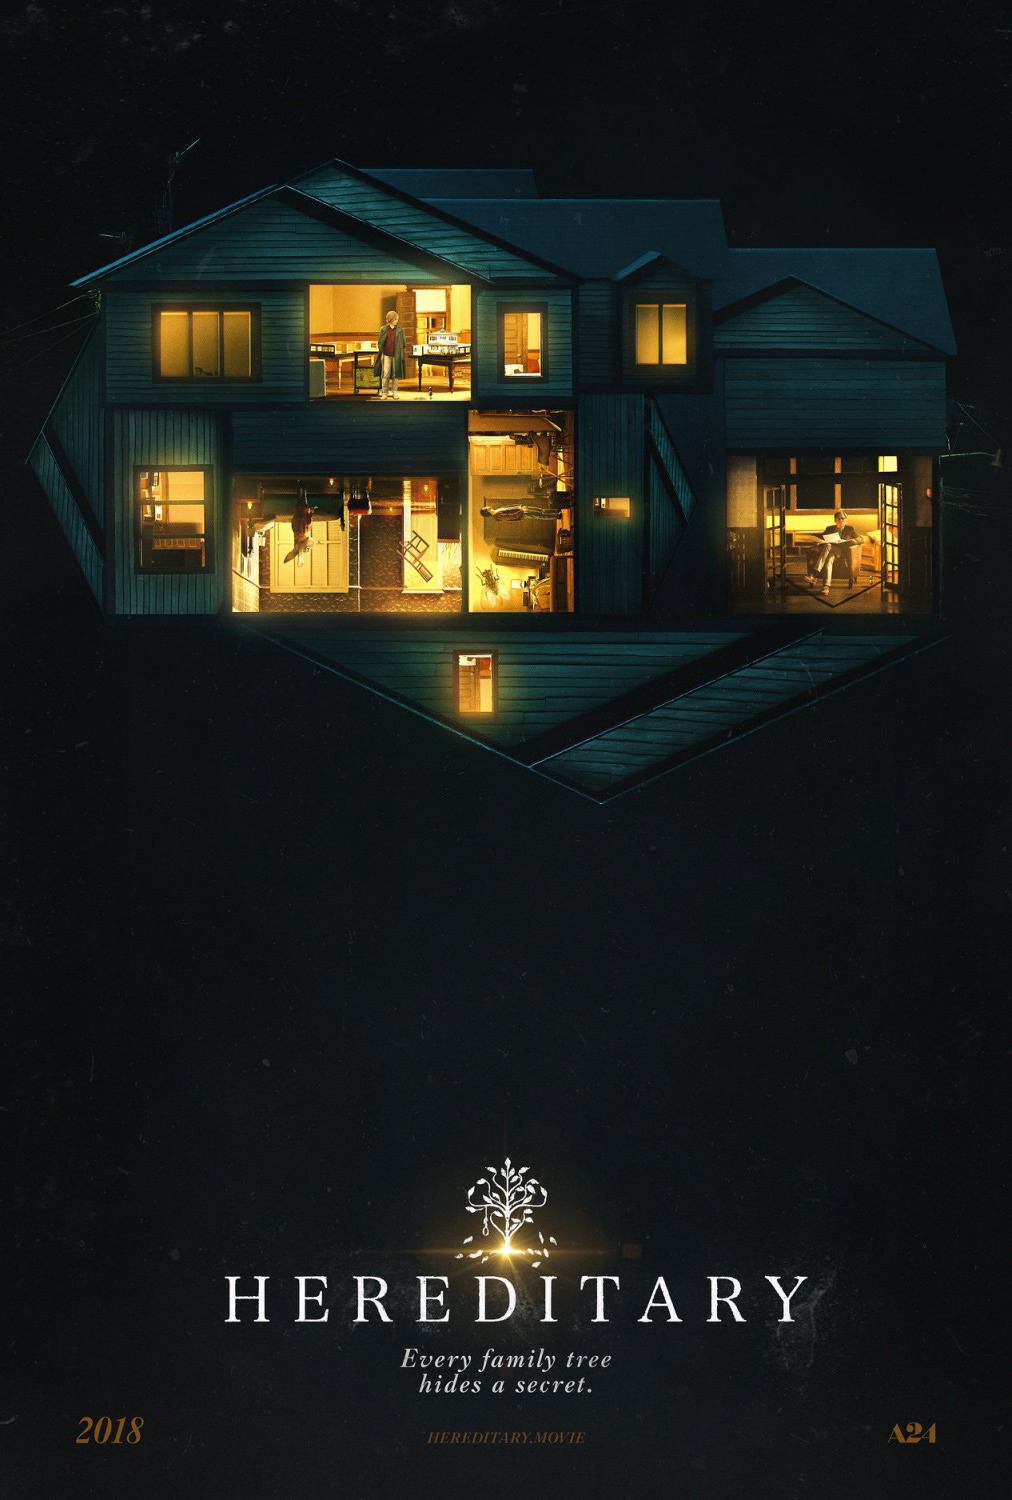 hereditary-poster-main.jpg